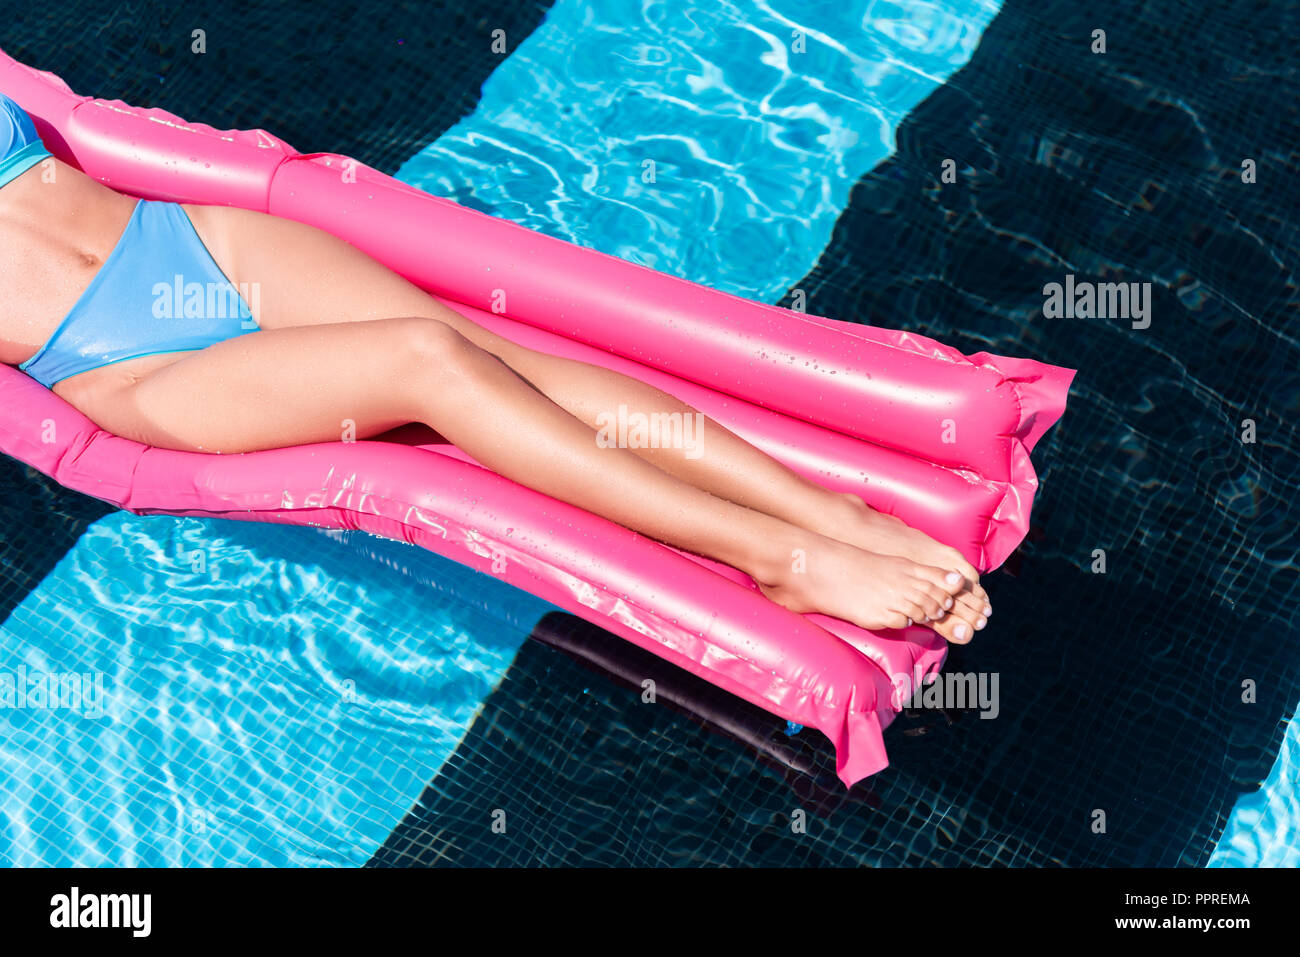 low section view of girl resting on pink inflatable mattress in swimming pool - Stock Image